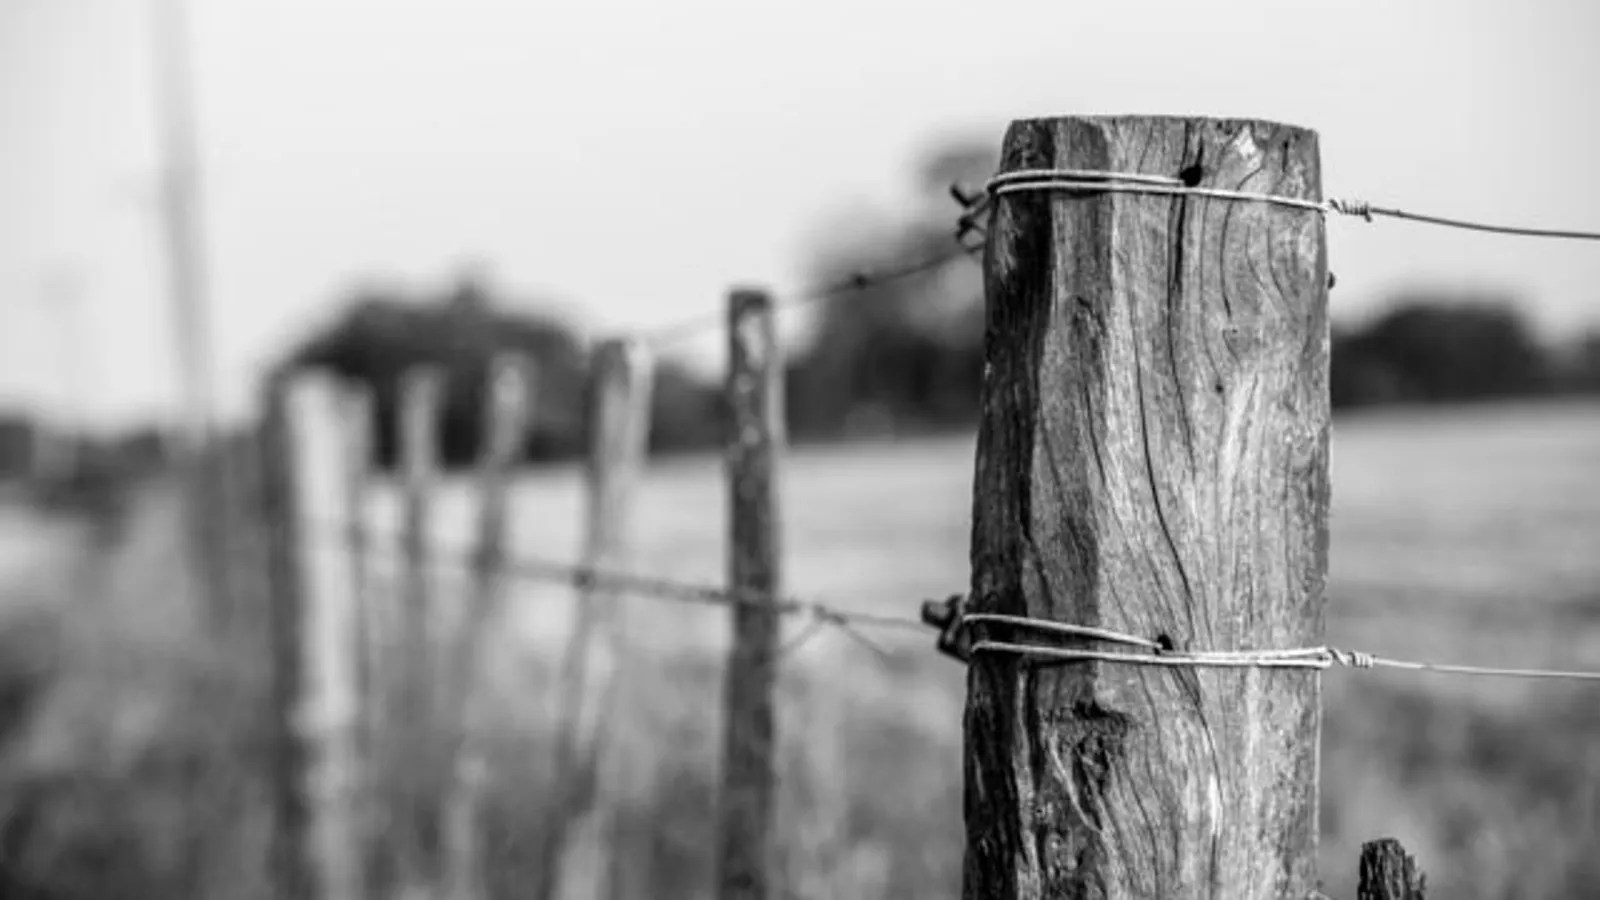 Wire Fencing Barbed Wire Fences Were An Early Diy Telephone Network